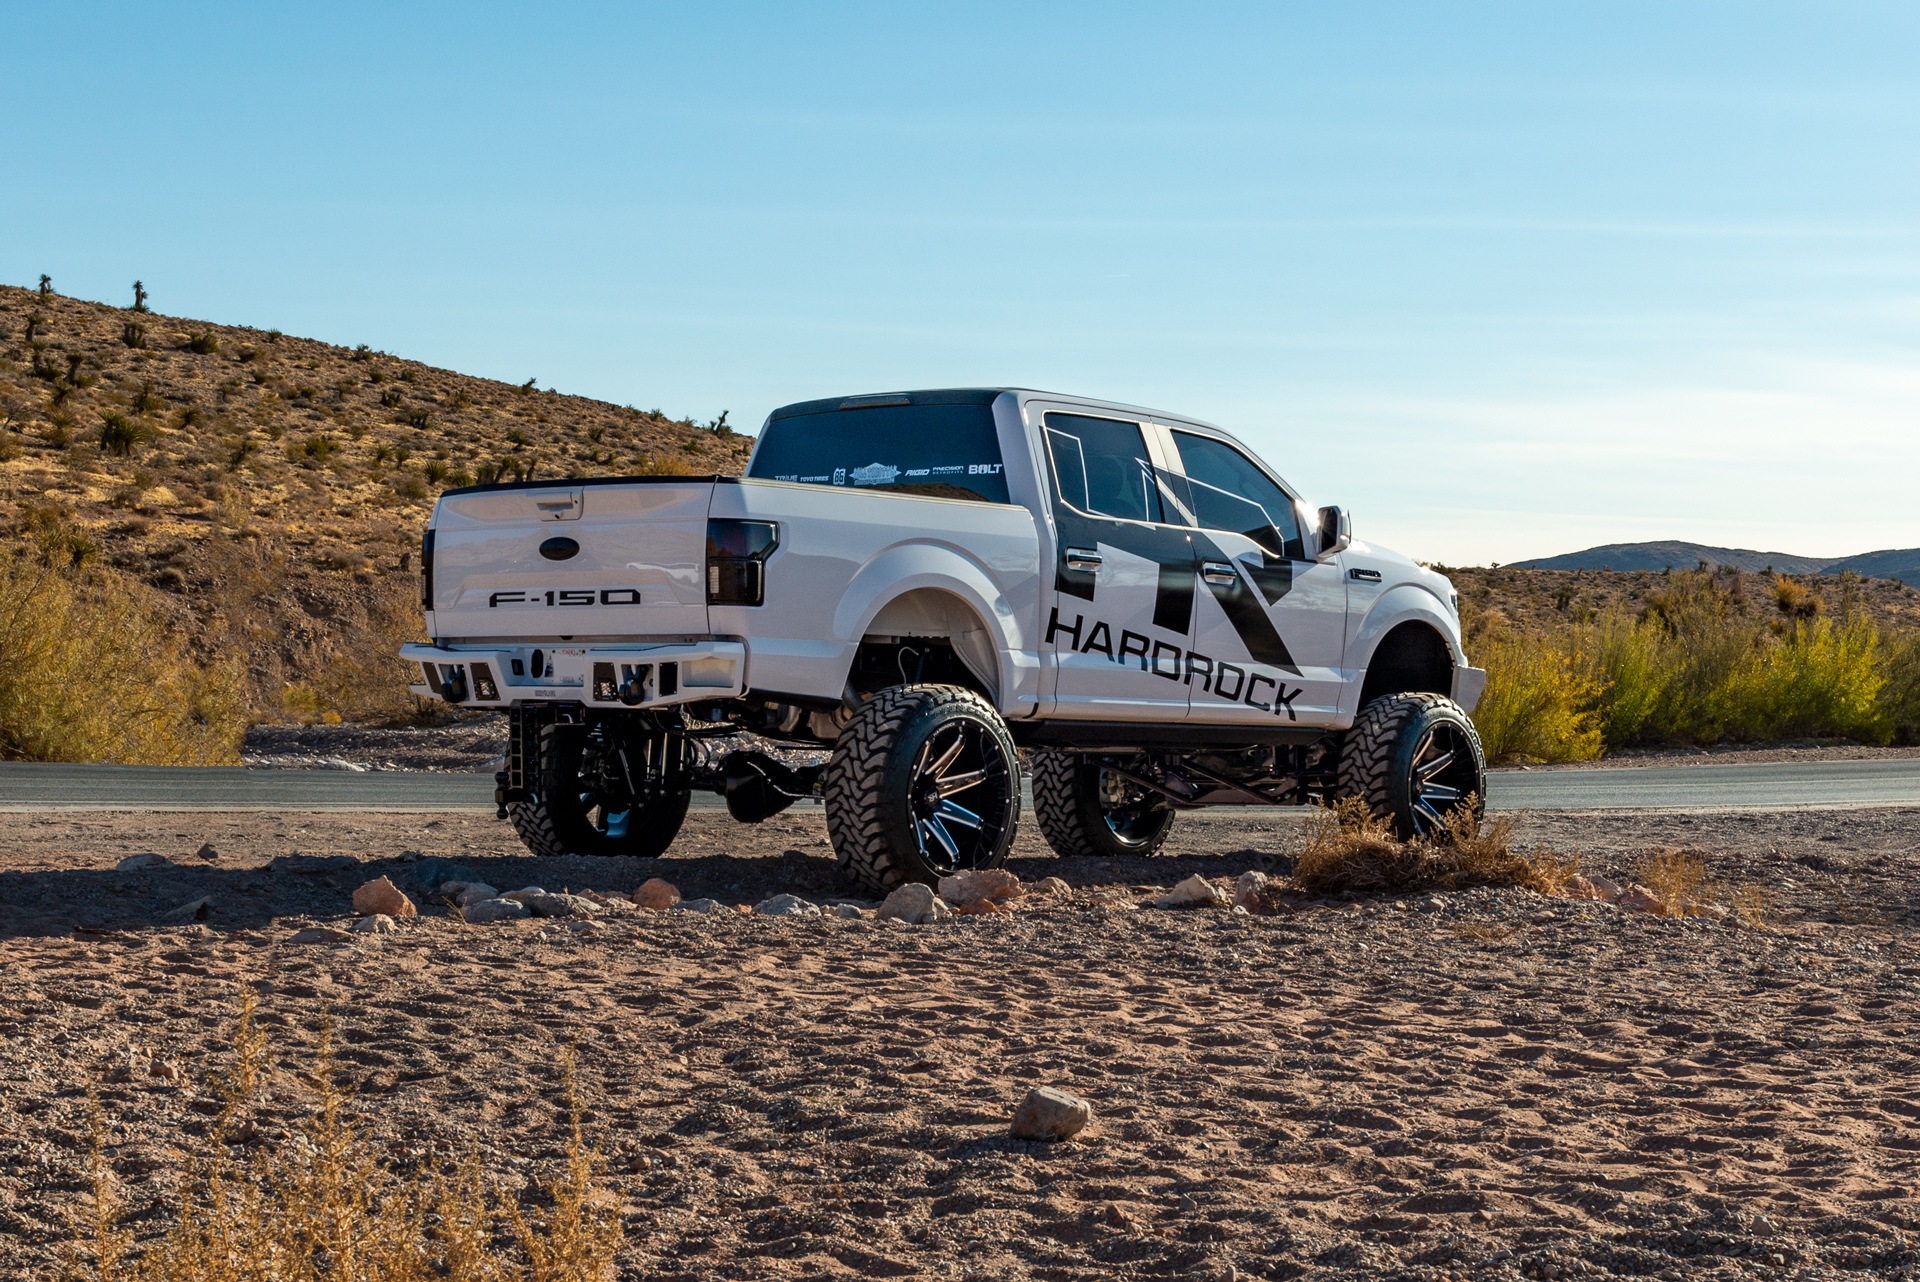 H502 Xposed PainKiller 24x14 Hardrock Offroad Wheels Lifted Ford F-150 SEMA 2019